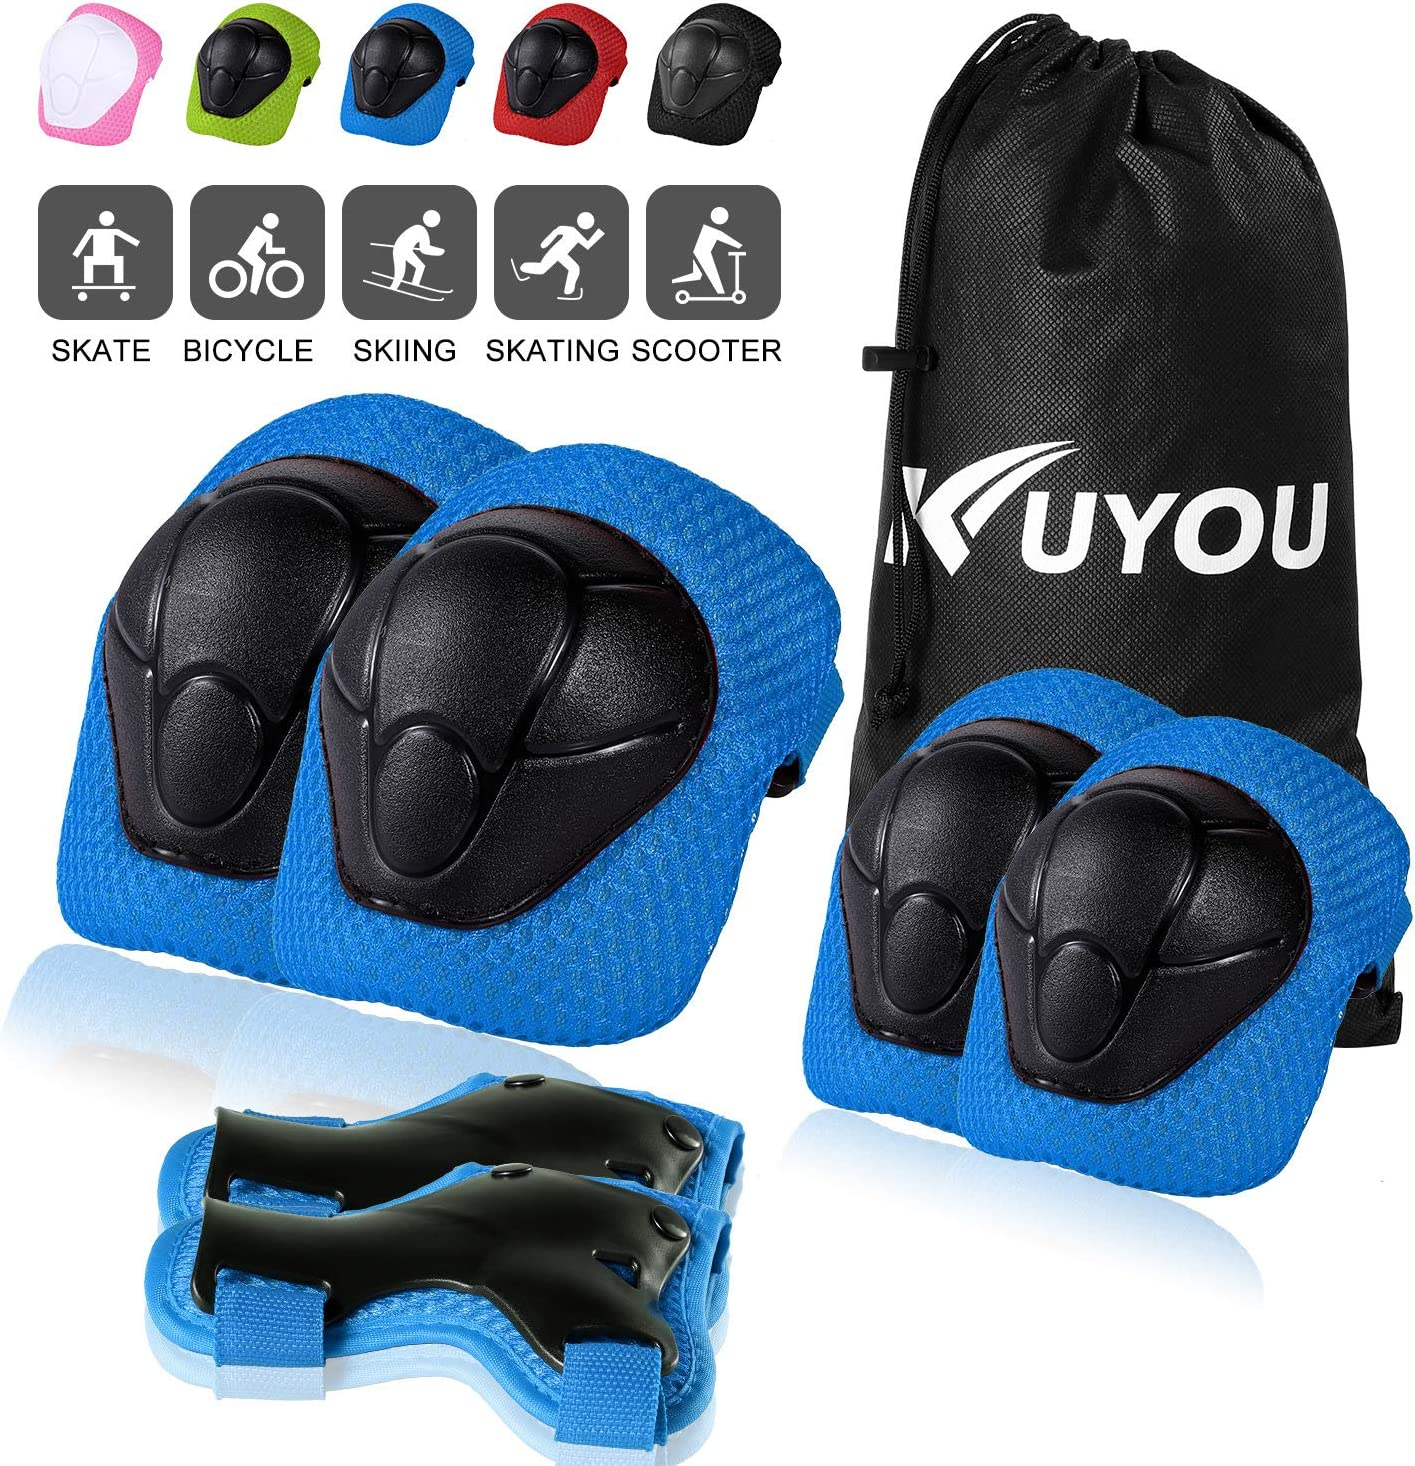 KUYOU Kids Protective Gear, Knee Pads Elbow Pads with Wrist Guard for Skateboarding Inline Roller Skating Cycling Biking BMX Ski Scooter